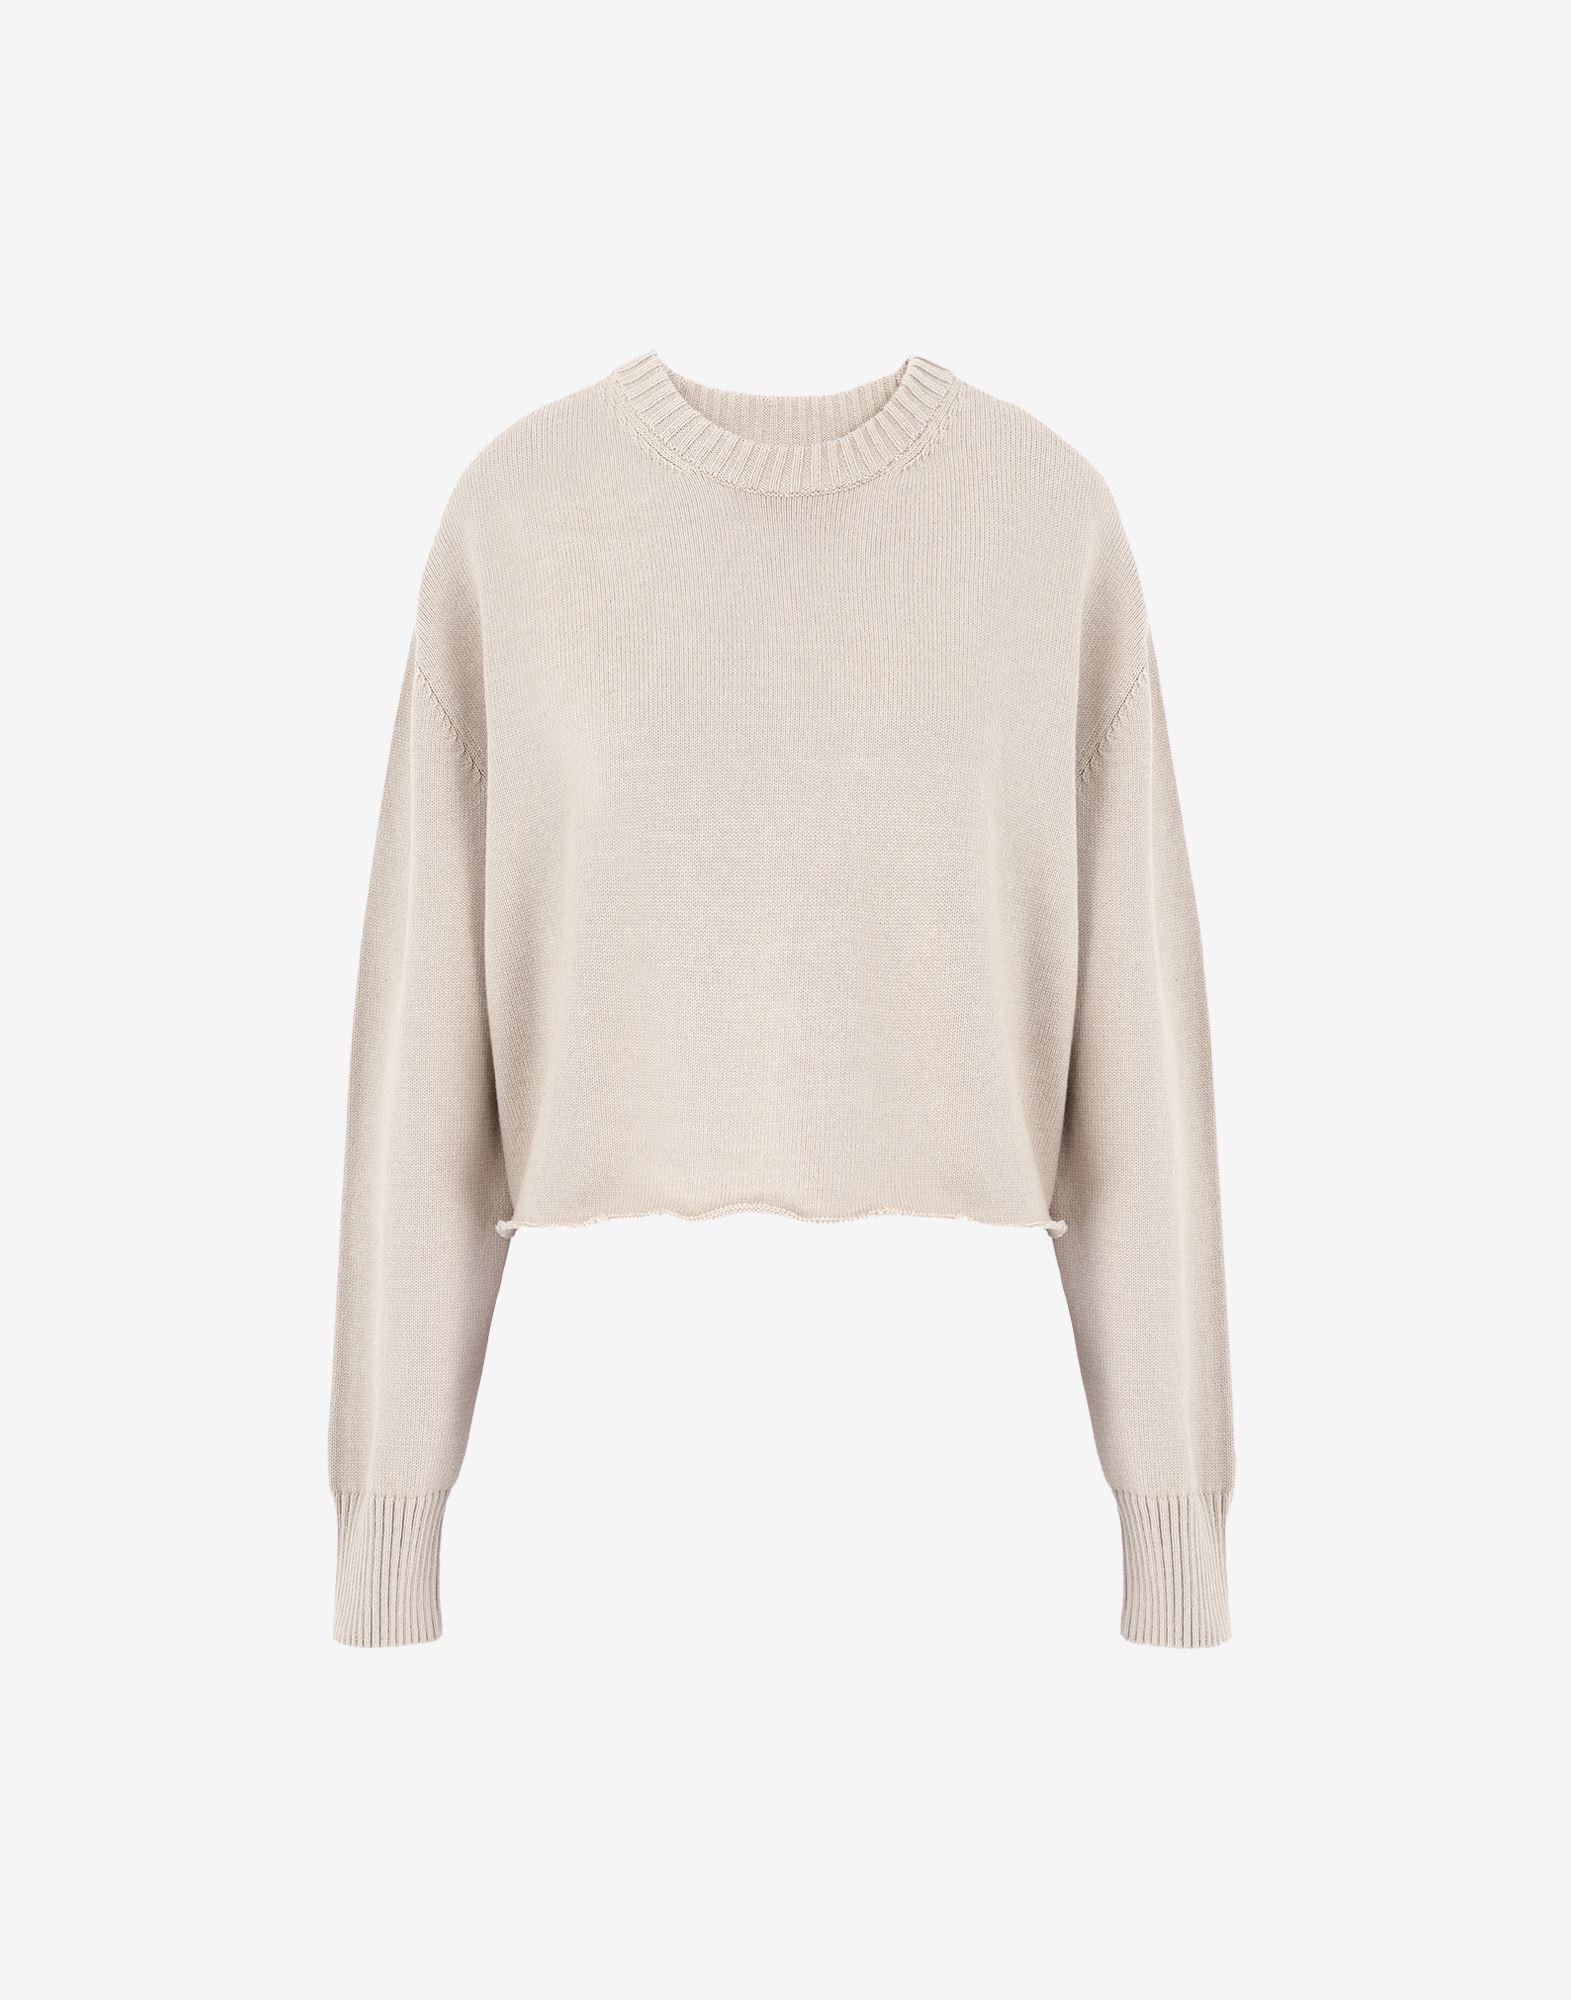 Elbow patch sweater 4